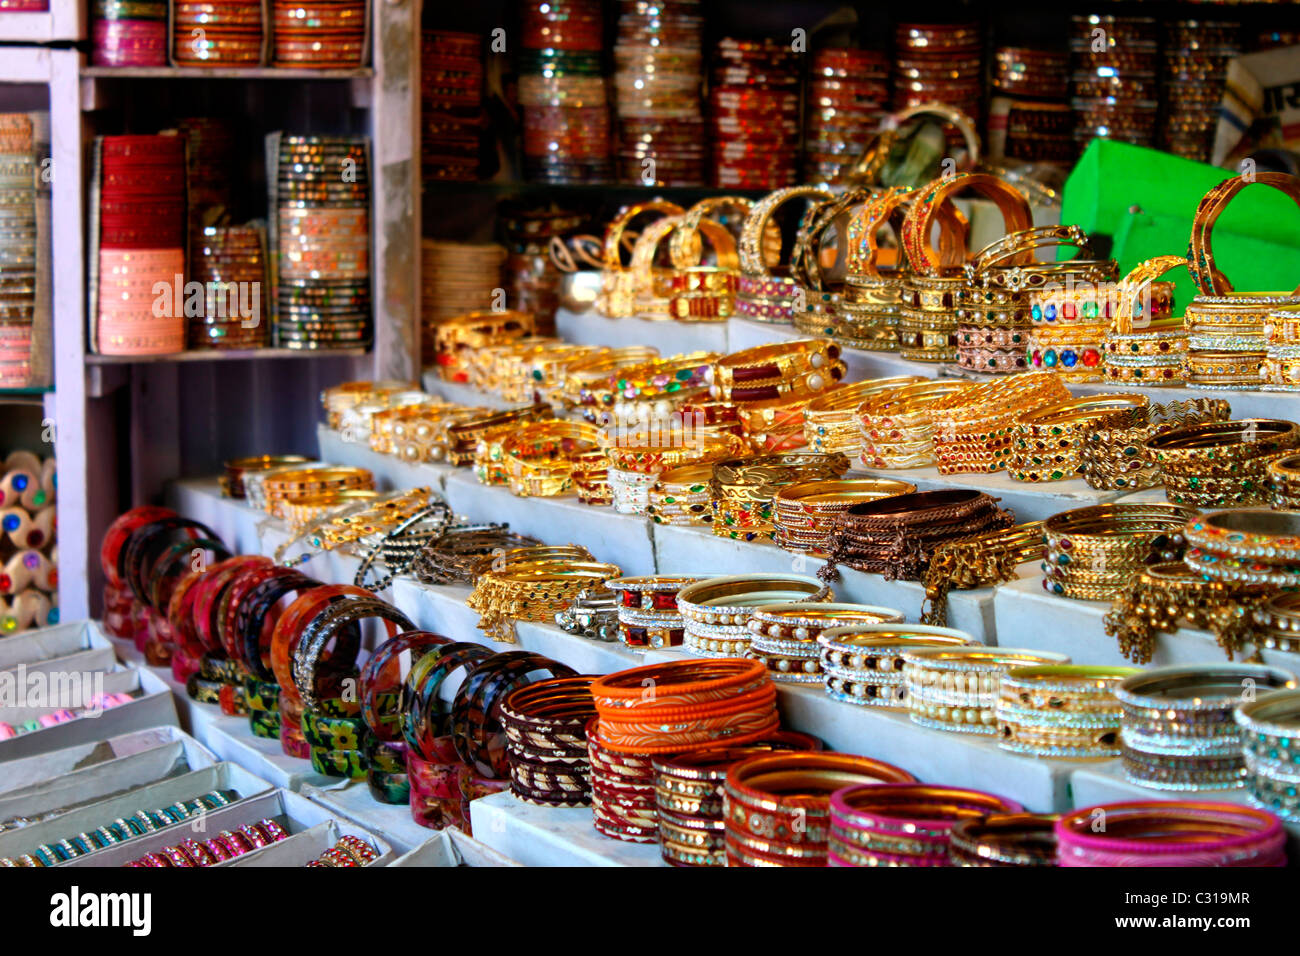 held be that bangle close why because time to no her ancestors matter age thebangleblog bangles at img shop heart every his selling profitable woman felt what would